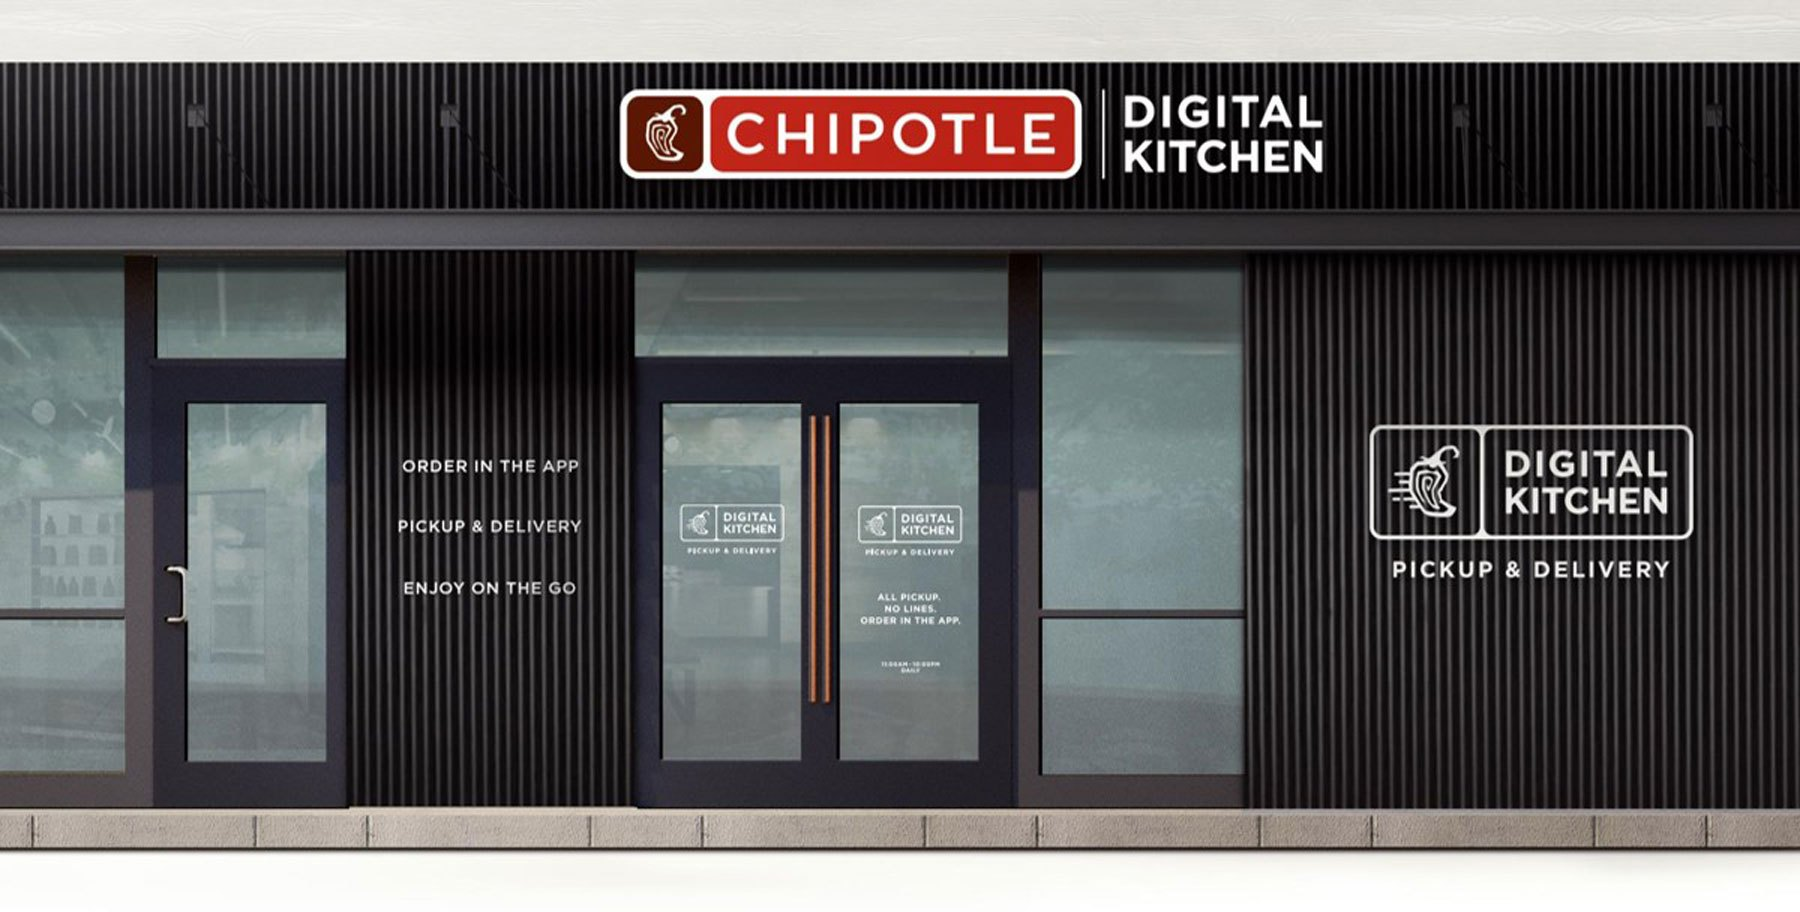 Chipotle doesn't want you to eat at its newest restaurant